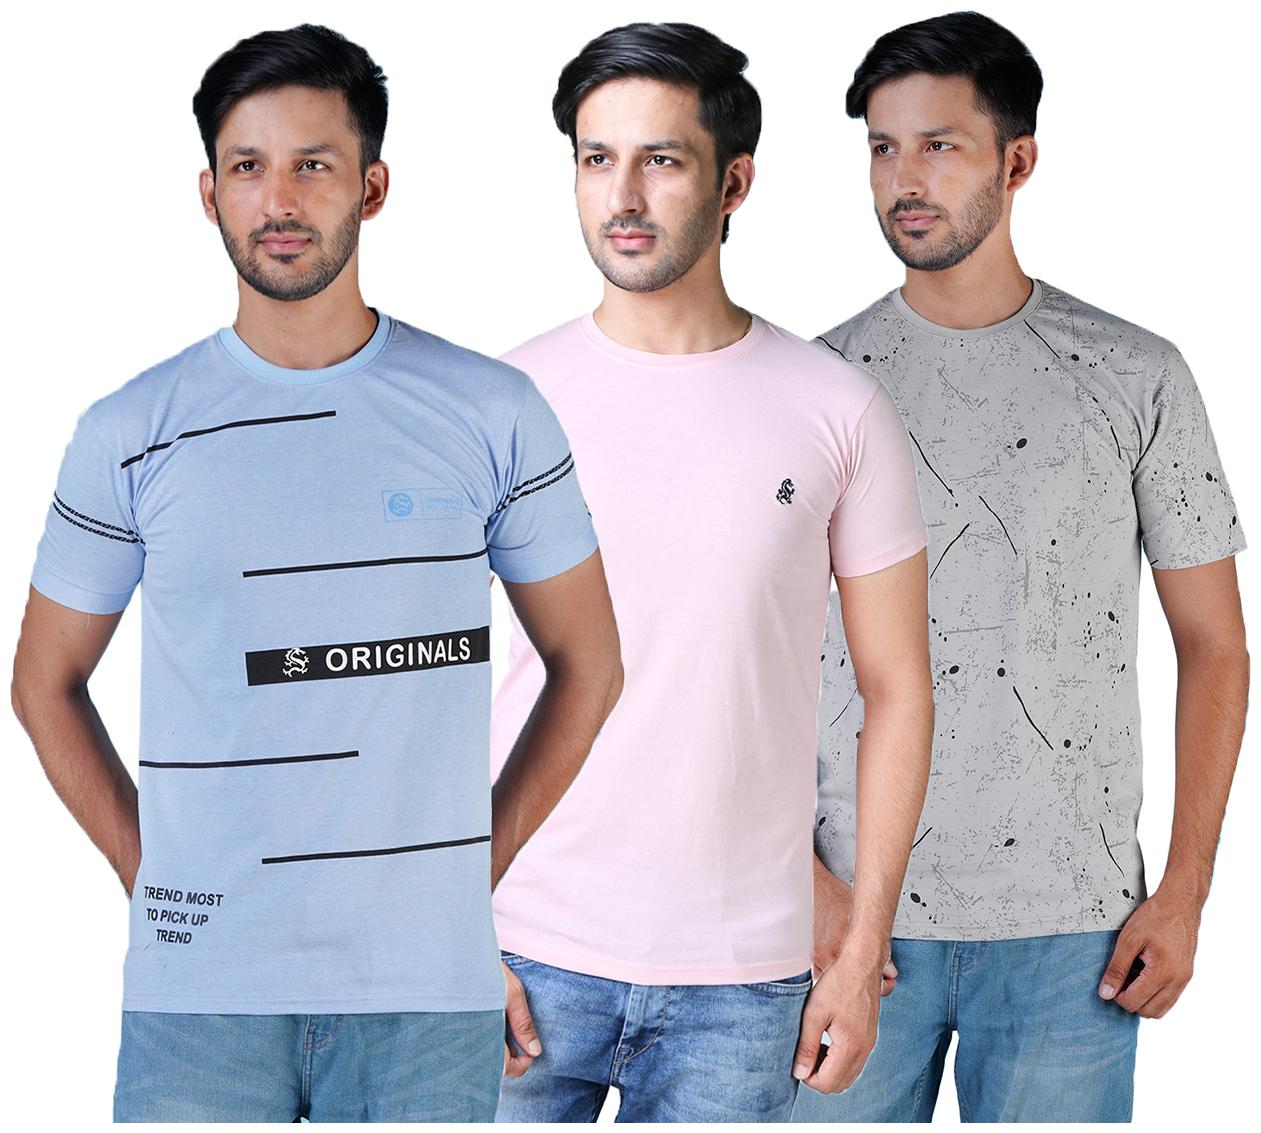 https://assetscdn1.paytm.com/images/catalog/product/A/AP/APPDRRAGON-MEN-SHOP2469568A8ED4B4/1565611143716_3..jpg